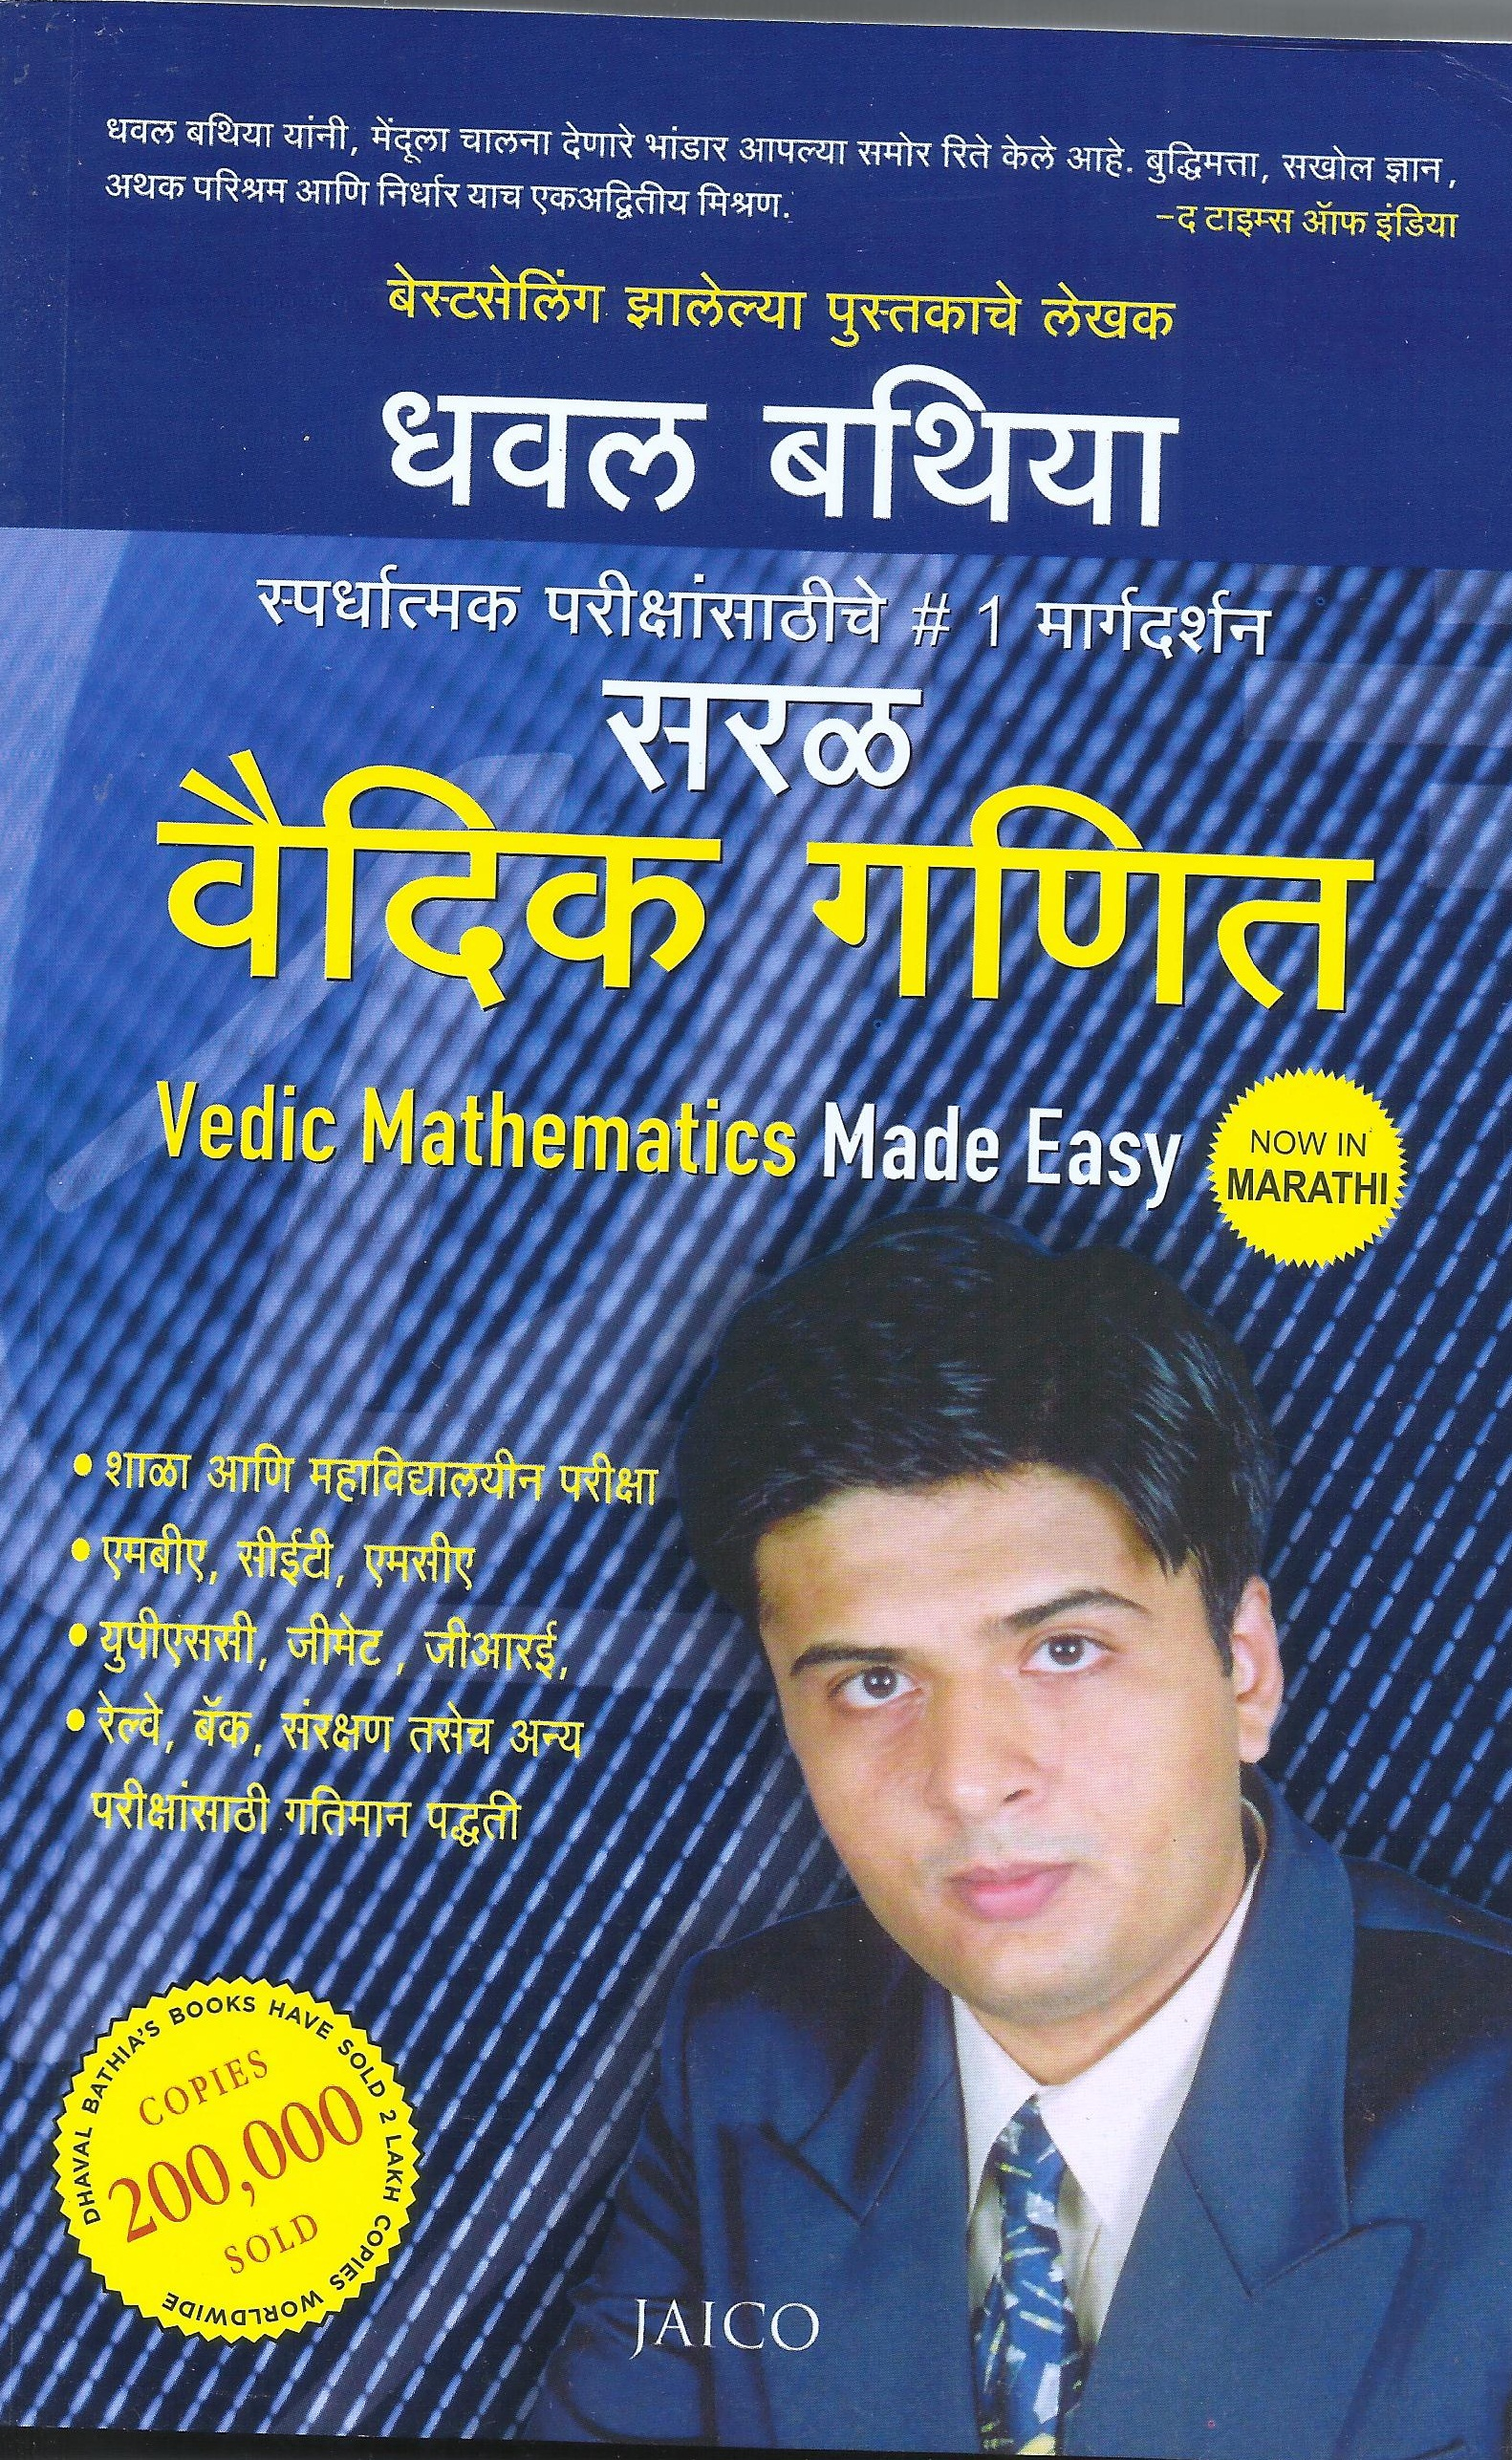 Vedic Mathematics Made Easy Marathi Language